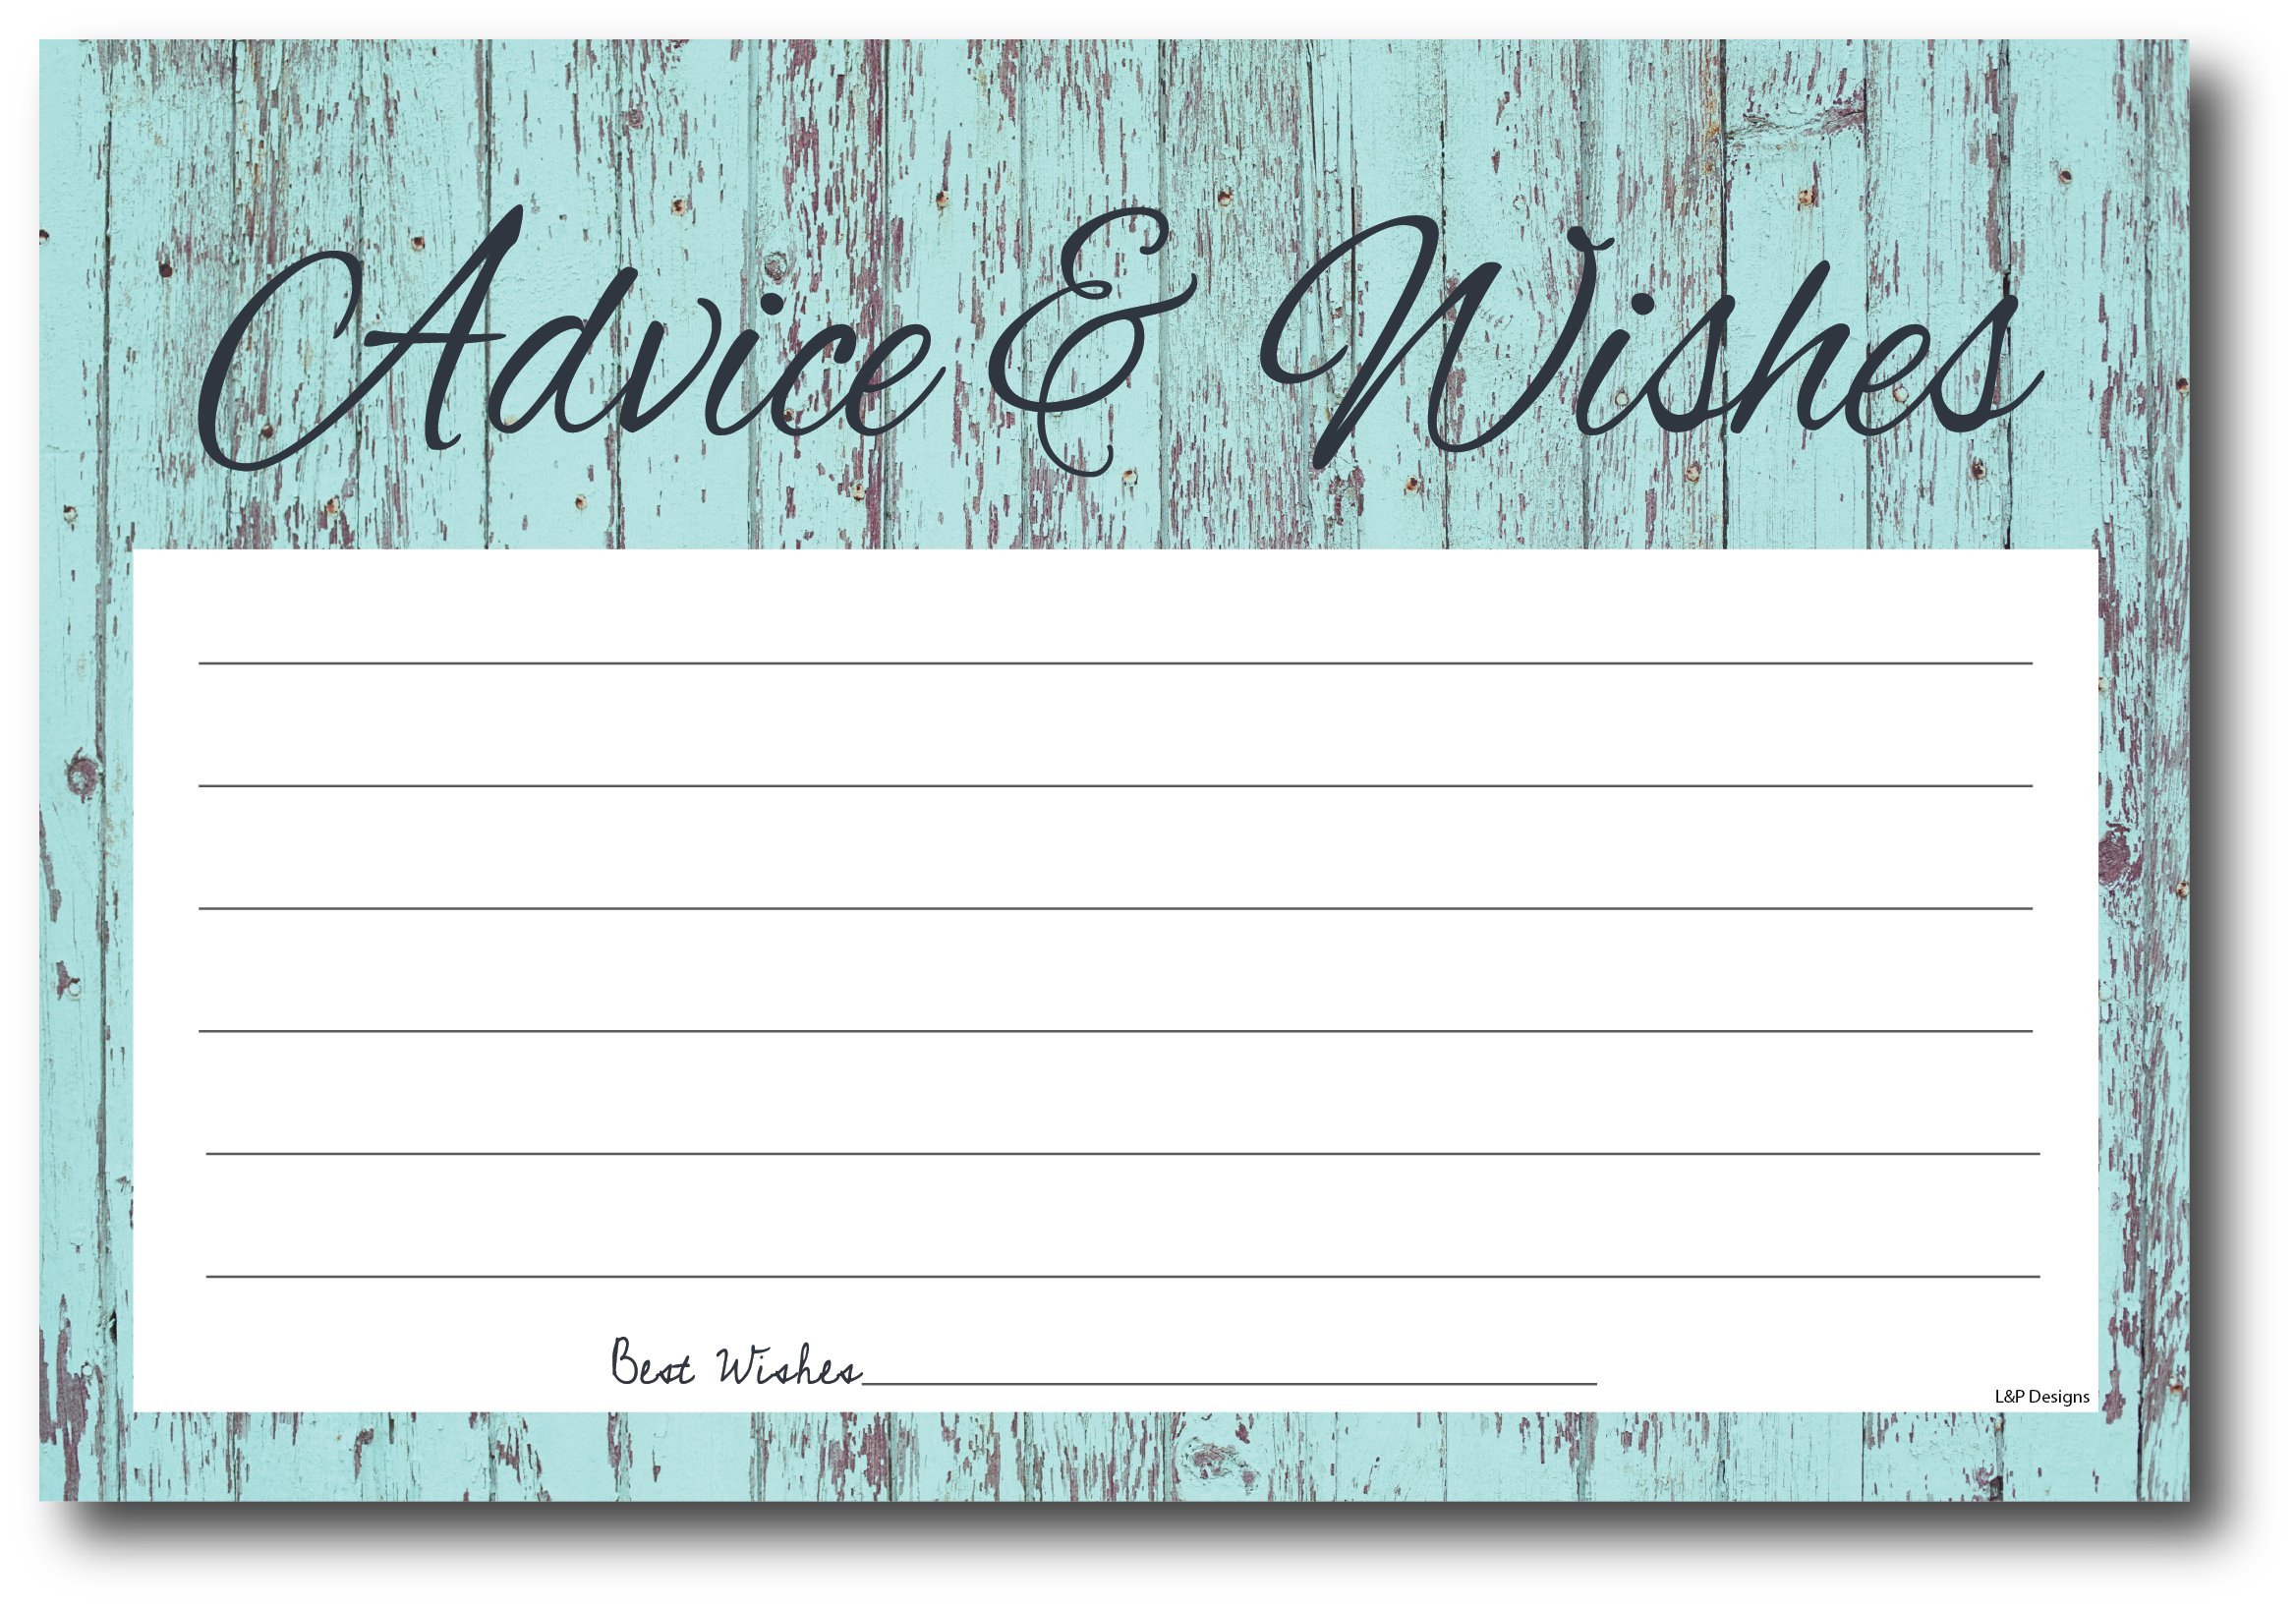 50 Rustic Blue Wood Gender Neutral Advice And Wishes Cards, Any Occasion, Two Grooms or Two Brides Advice Cards, Wedding Advice Cards, Bridal Shower, Advice For The Bride, Baby Shower Advice Cards by L&P Designs (Image #1)